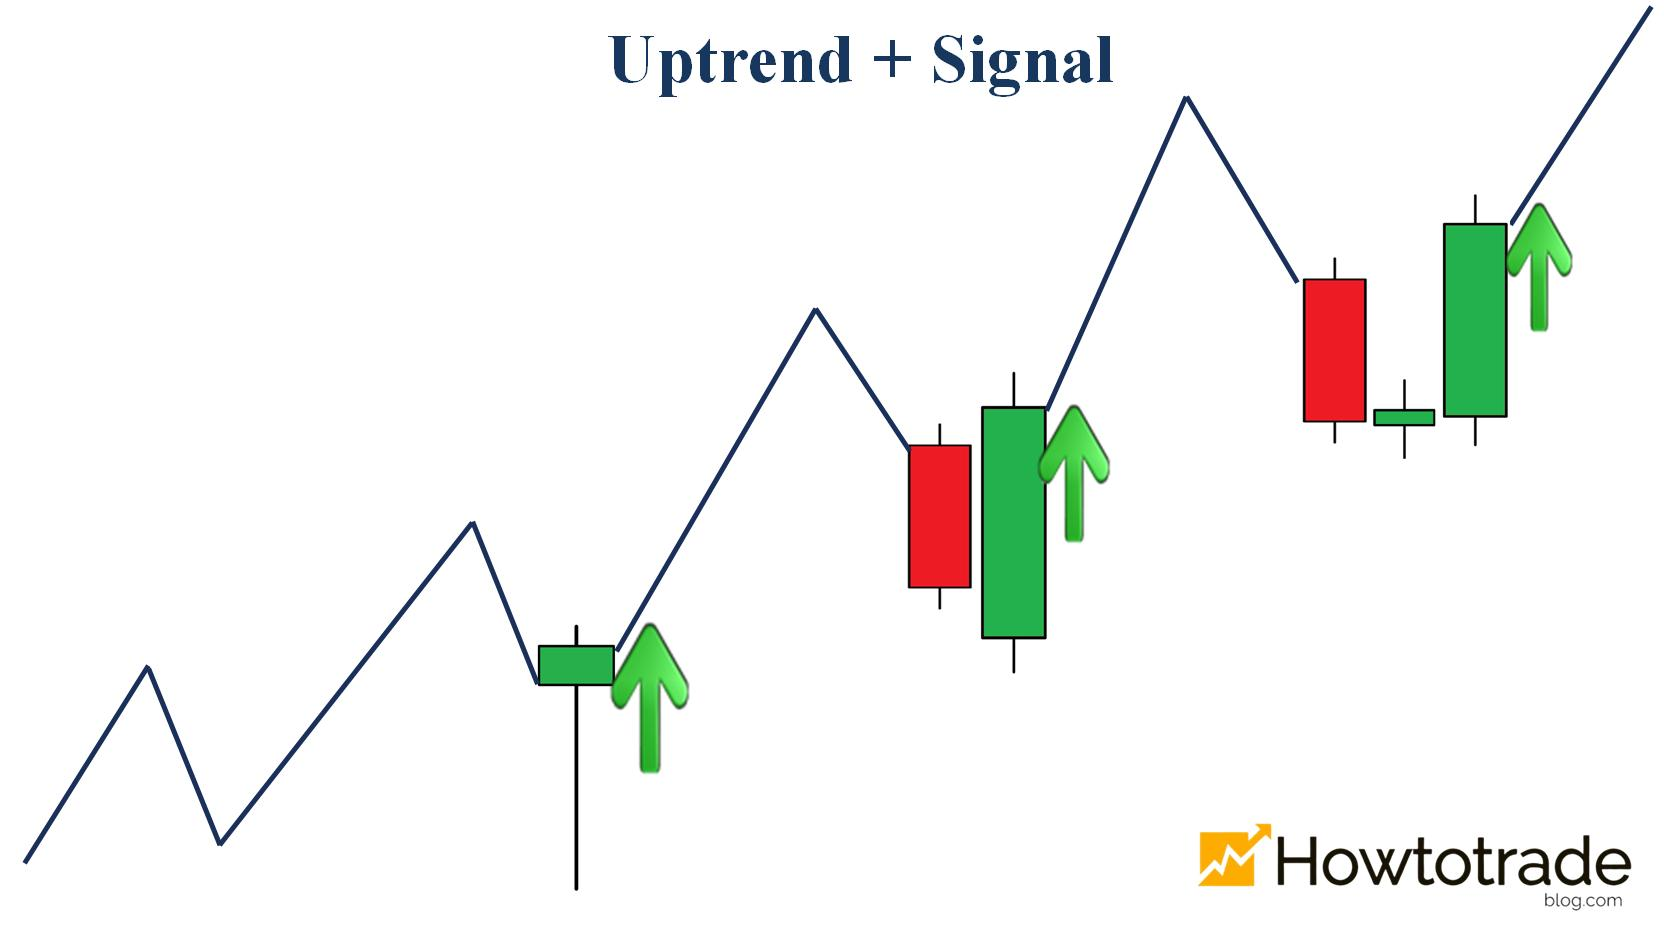 Uptrend and trading signals